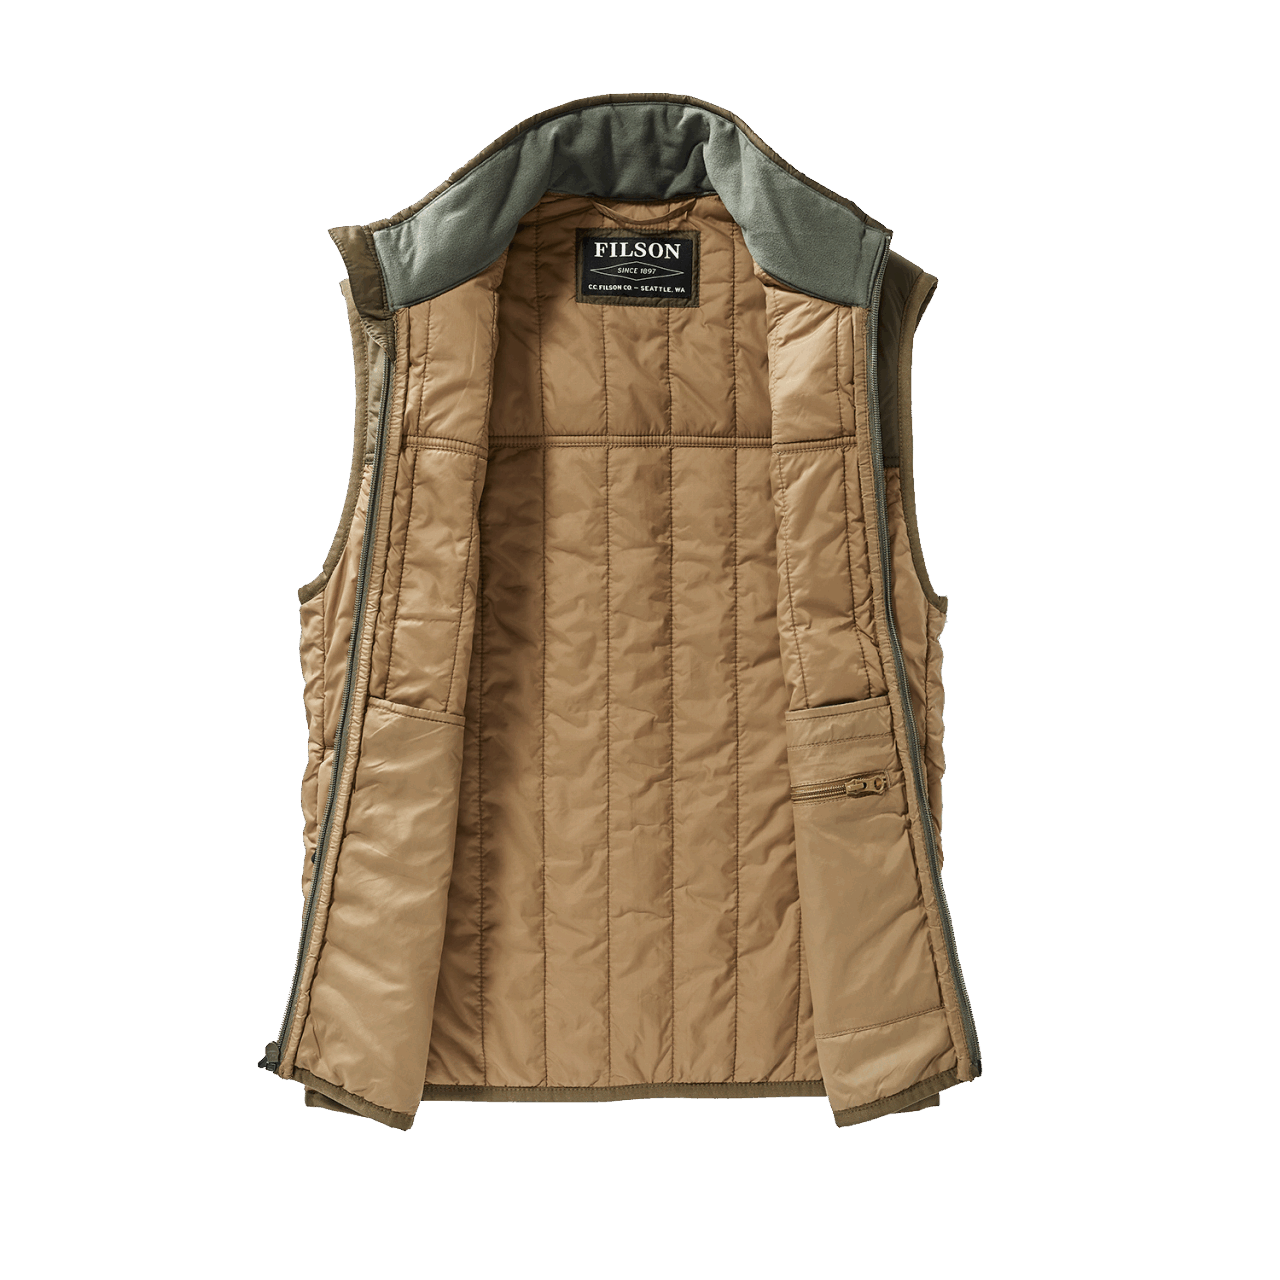 Filson Ultra Light Vest - dark tan